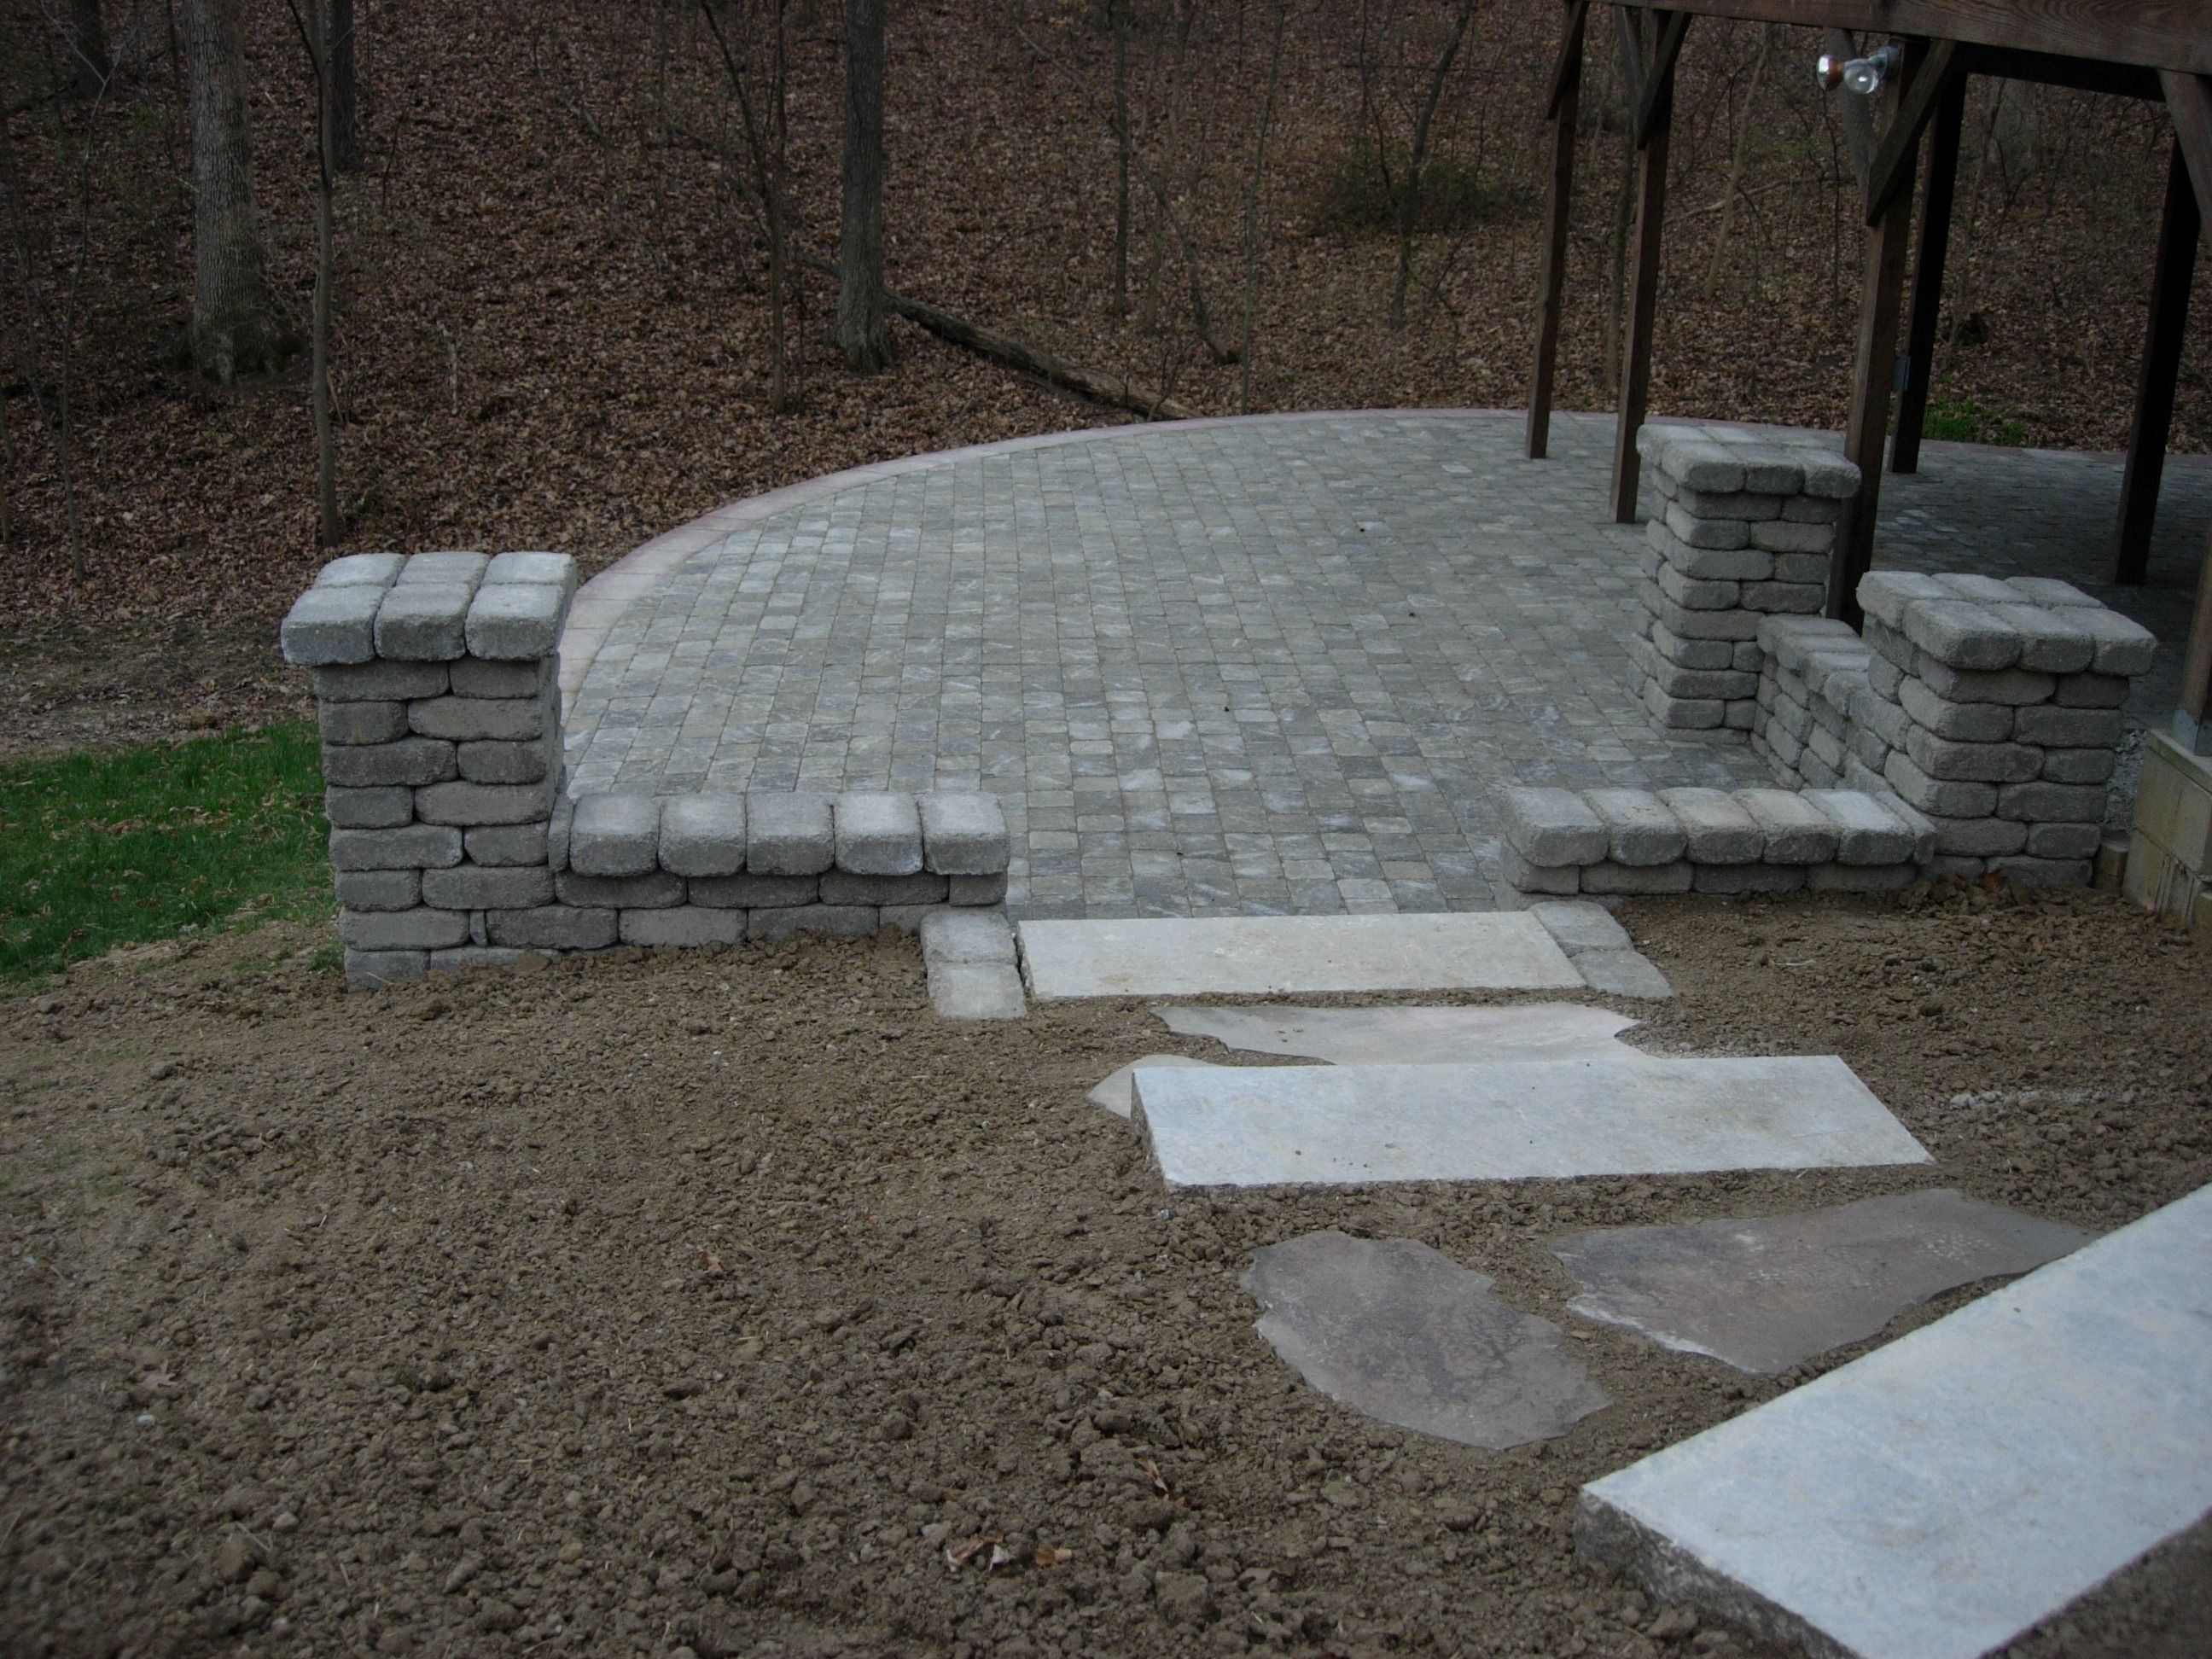 Brick Paver Patio/ Stone Columns/ Stone Steps/ Natural Stone Steppers/  KIEFERLANDSCAPING.